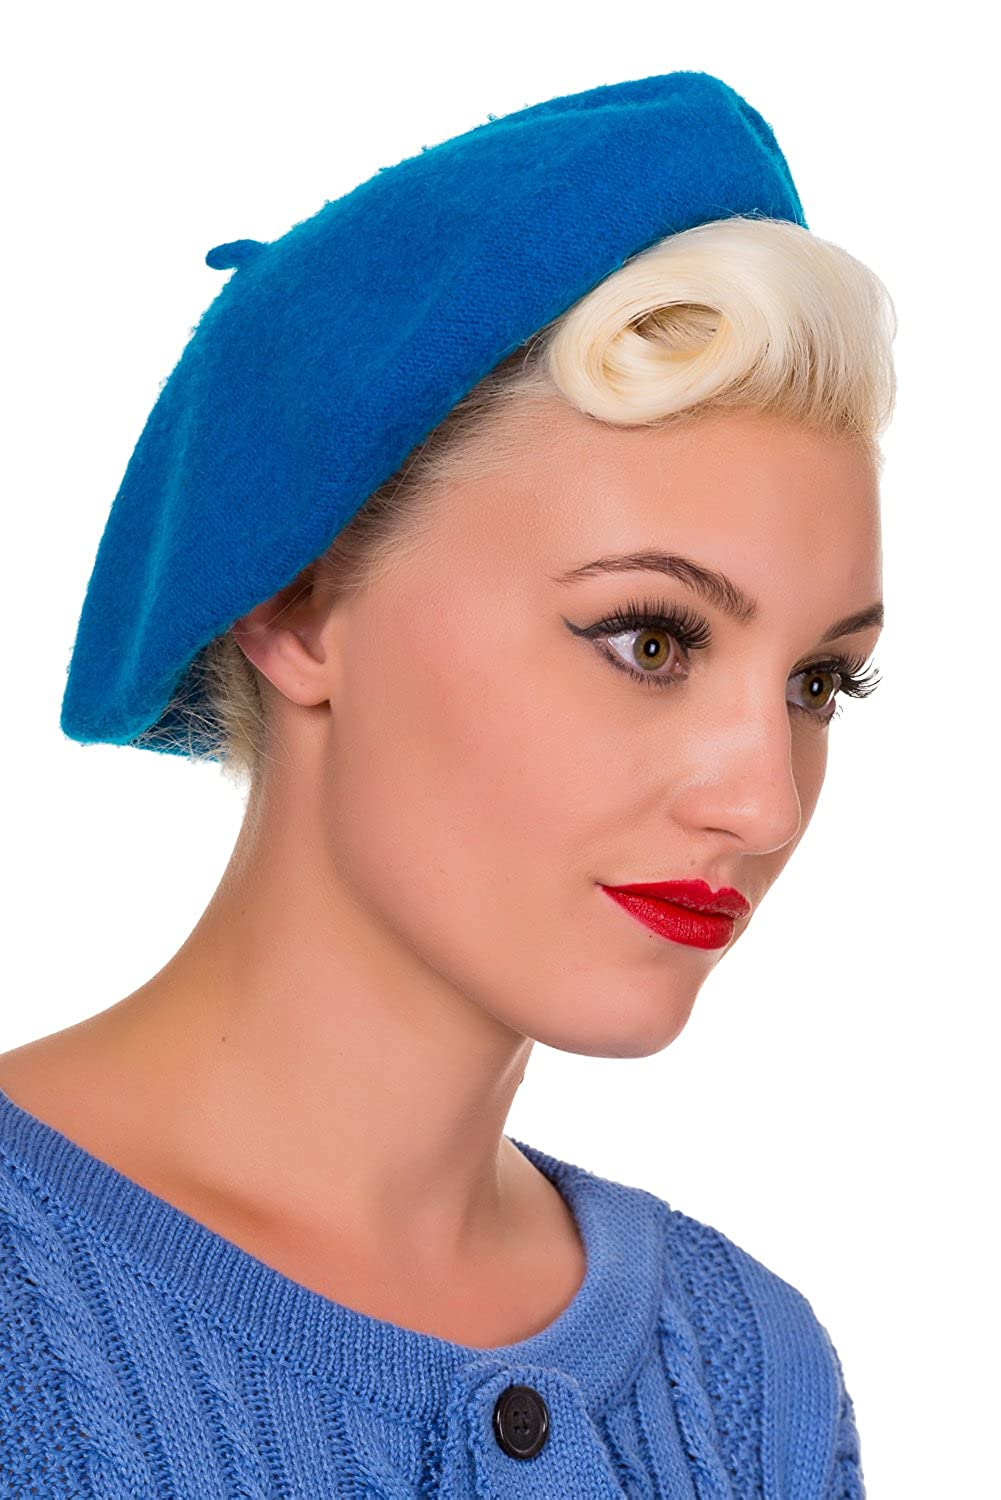 1930s Style Hats | 30s Ladies Hats Banned Claire Vintage Retro Beret Hat $15.95 AT vintagedancer.com